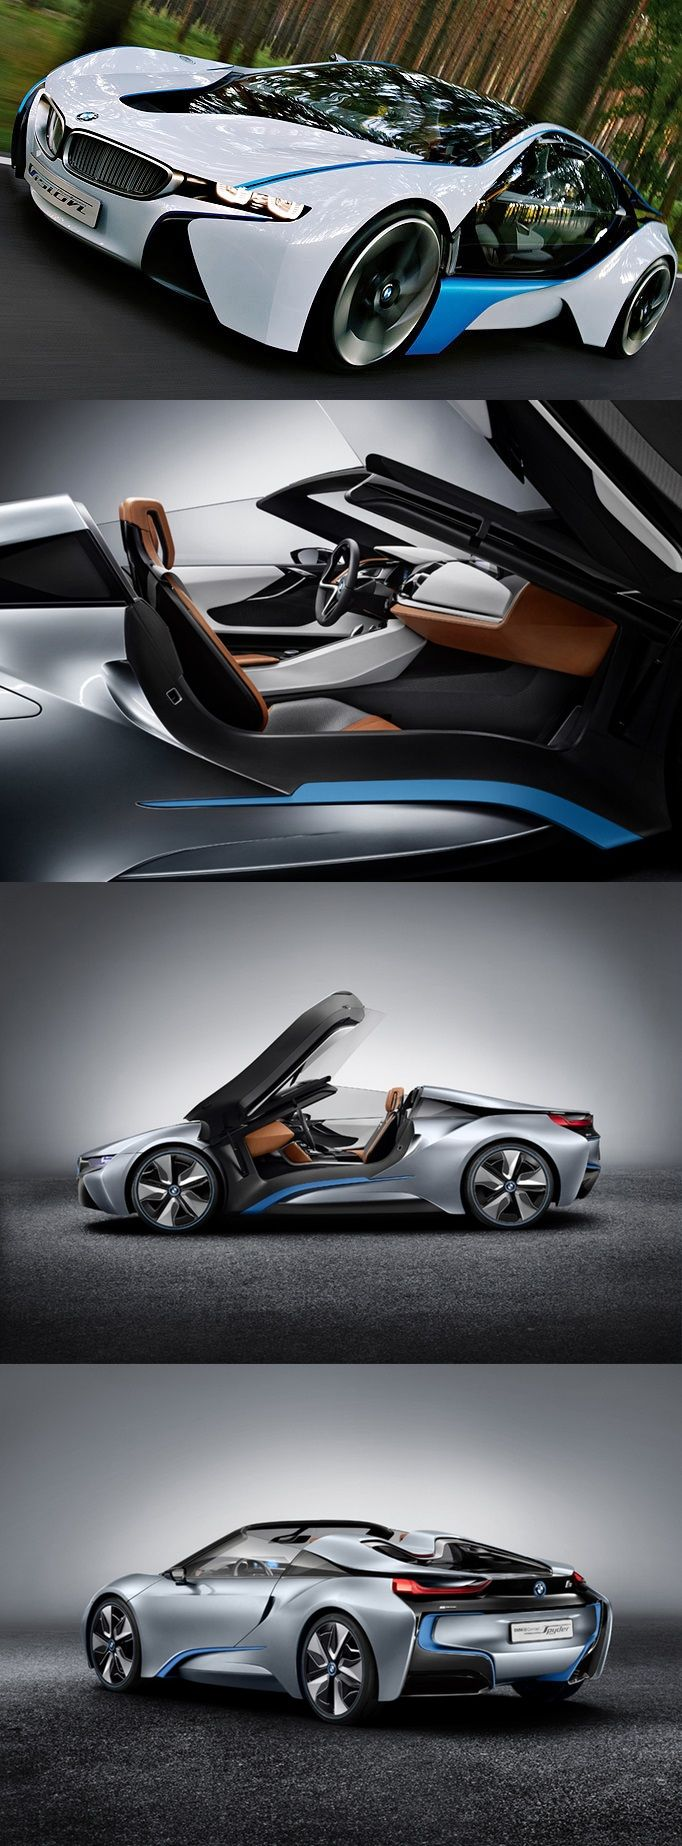 #BMW i8 Concept #Spyder. The BMW i8, first introduced as the BMW Concept Vision Efficient Dynamics, is a plug-in hybrid under development by BMW. BMW i8 has a 7.2 kWh lithium-ion battery pack estimated to deliver an all-electric range of 35 km (22 mi). #futurecar